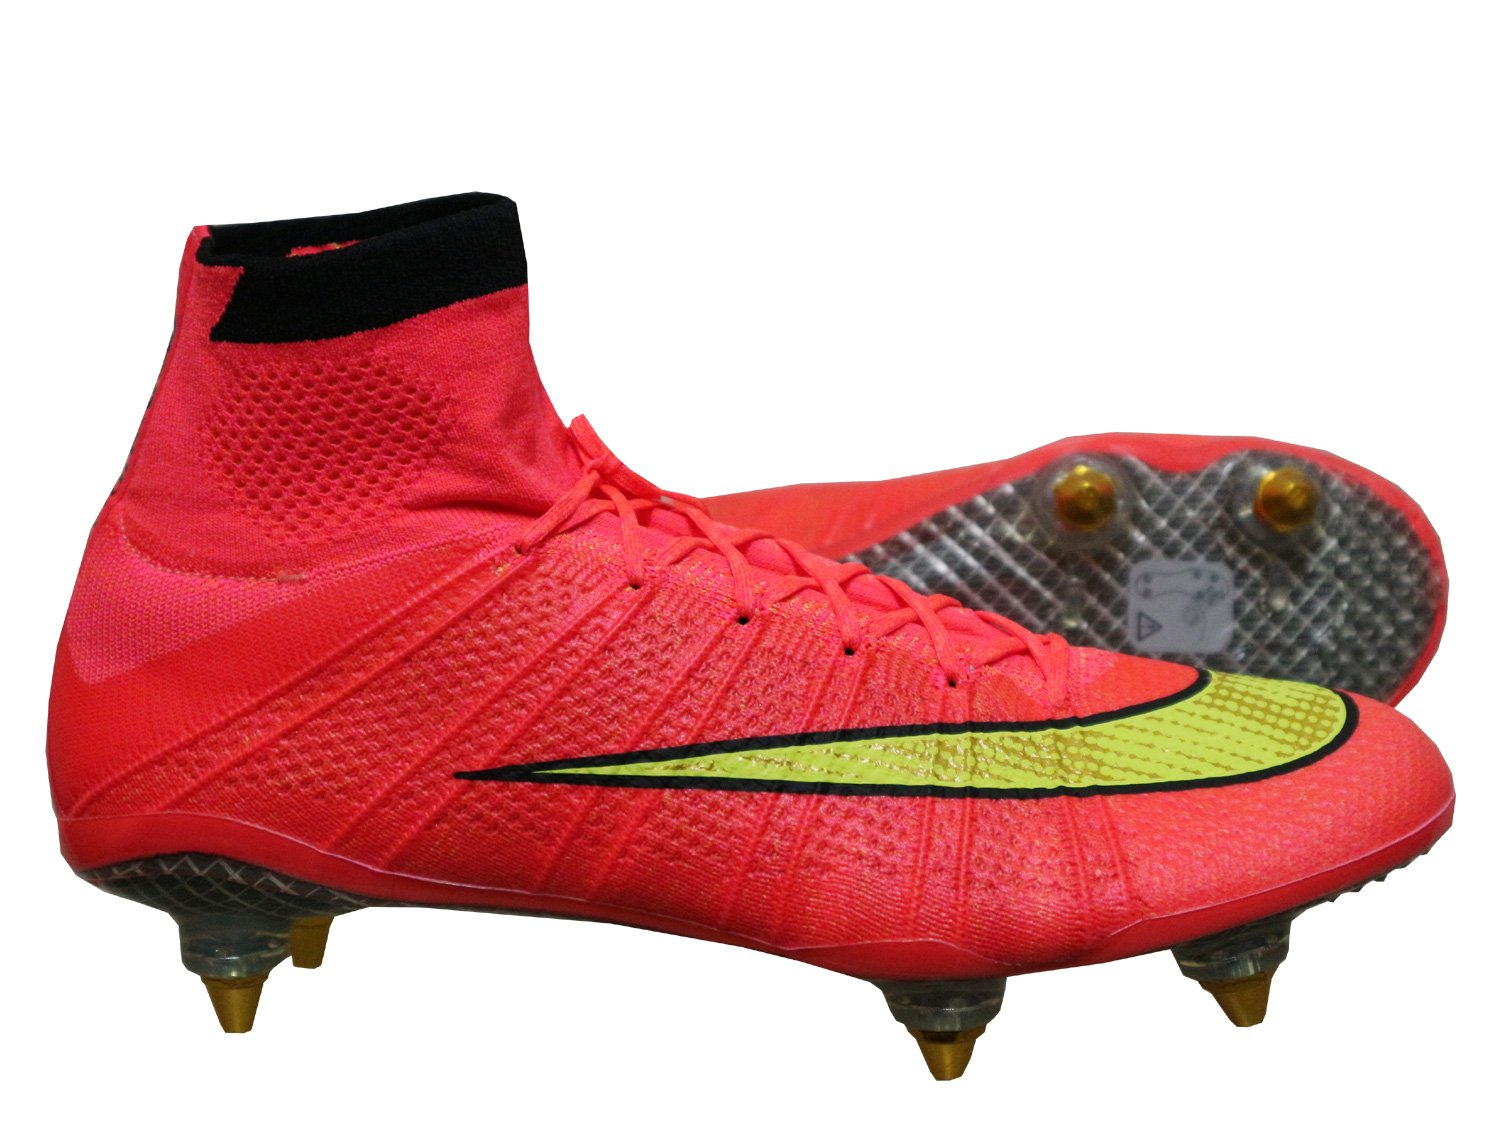 c126f93bba26c Nike Mercurial Superfly SG Studs Football Boots with Compression Socks Red:  Amazon.co.uk: Sports & Outdoors